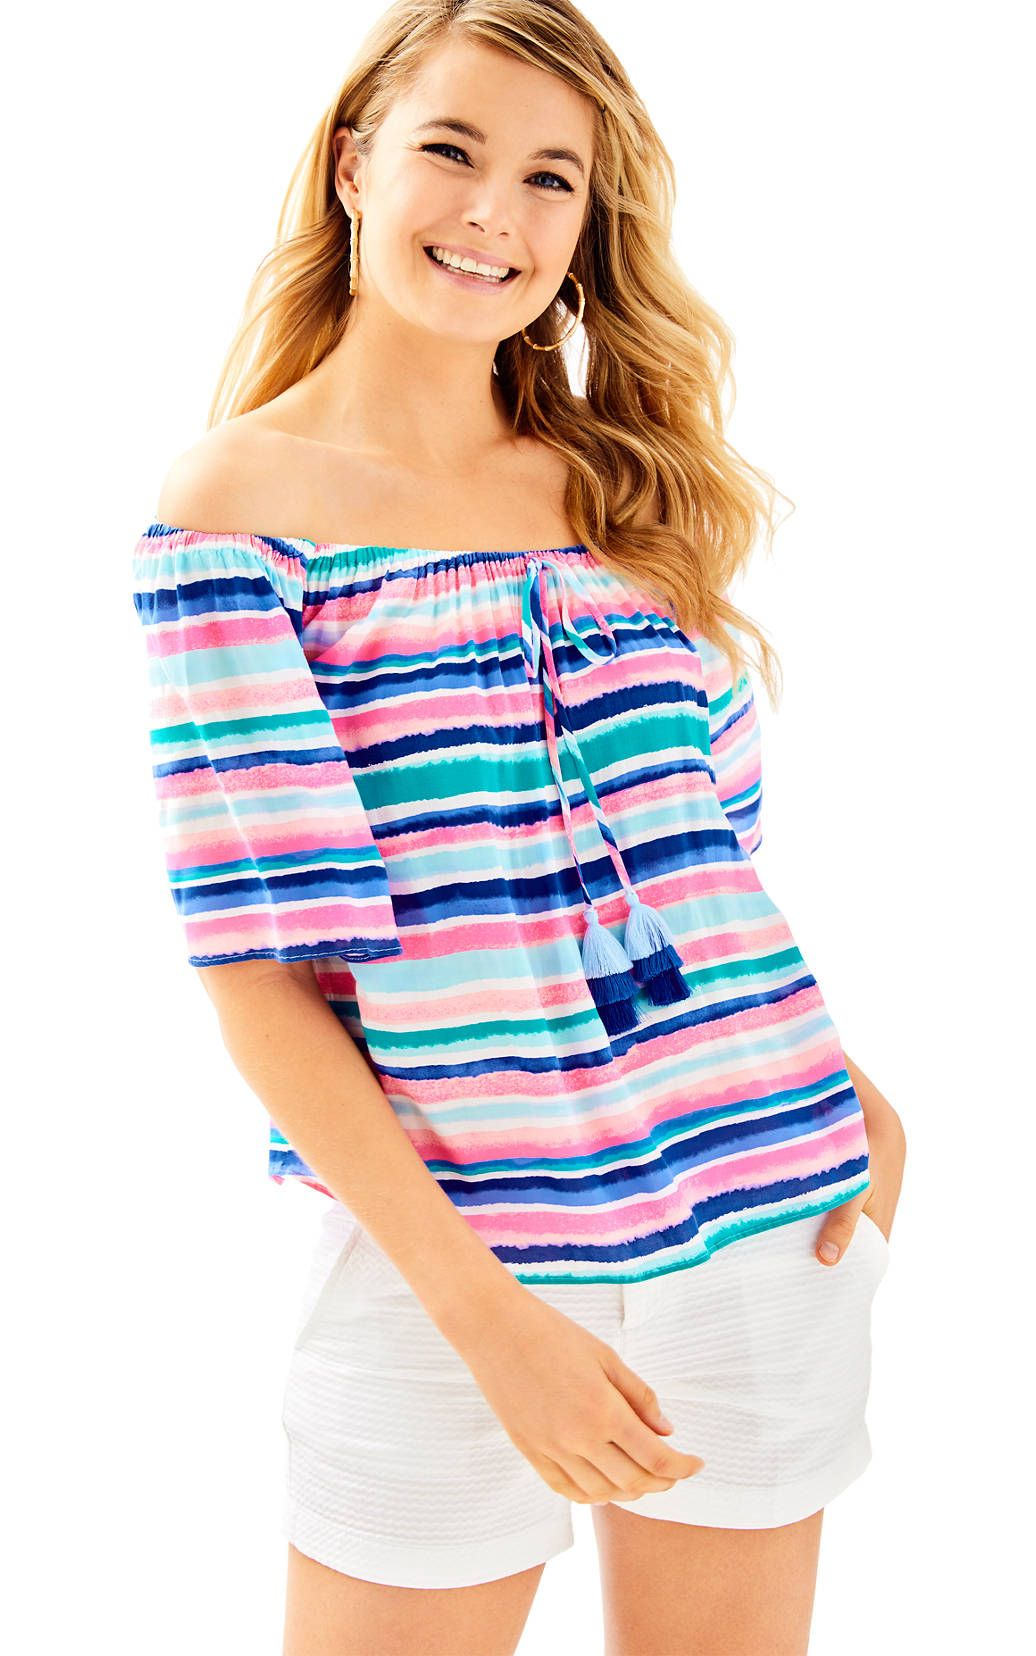 e6324ae073c314 Sain Off The Shoulder Top | lilly p | Tops, Lilly pulitzer, Sweater ...